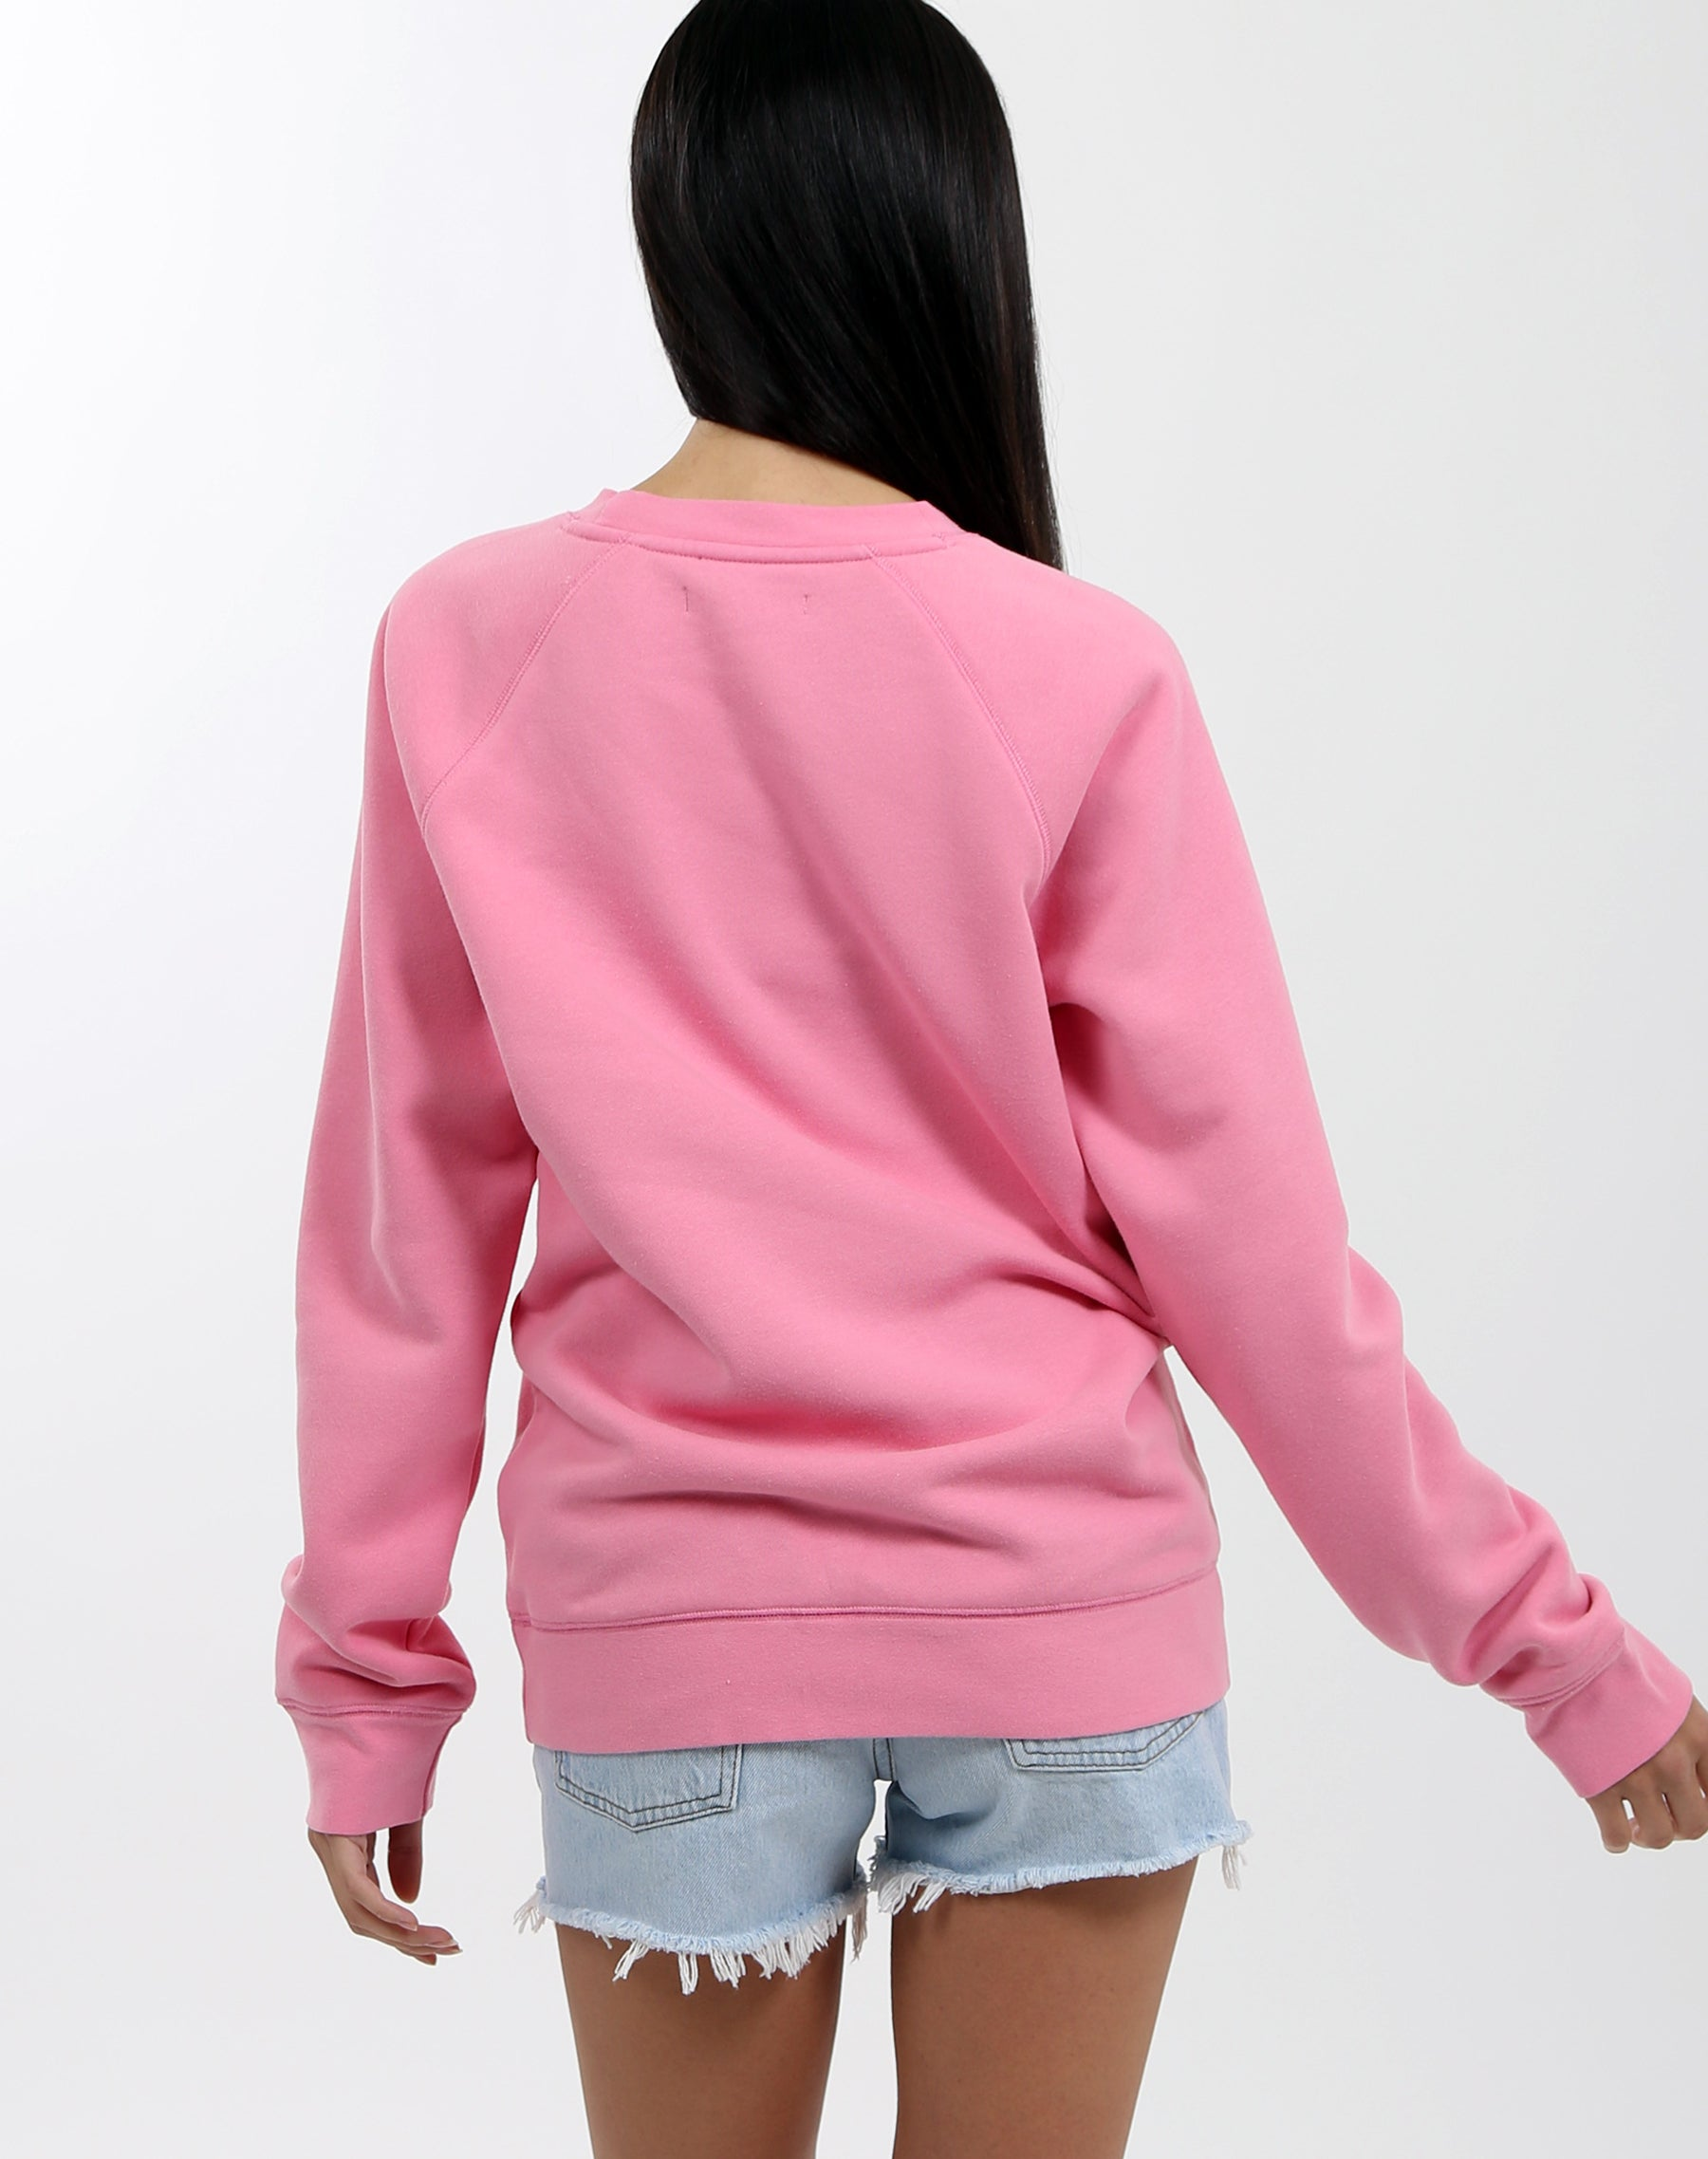 Photo of the back of the Brunette classic crew neck sweatshirt in hot pink by Brunette the label.